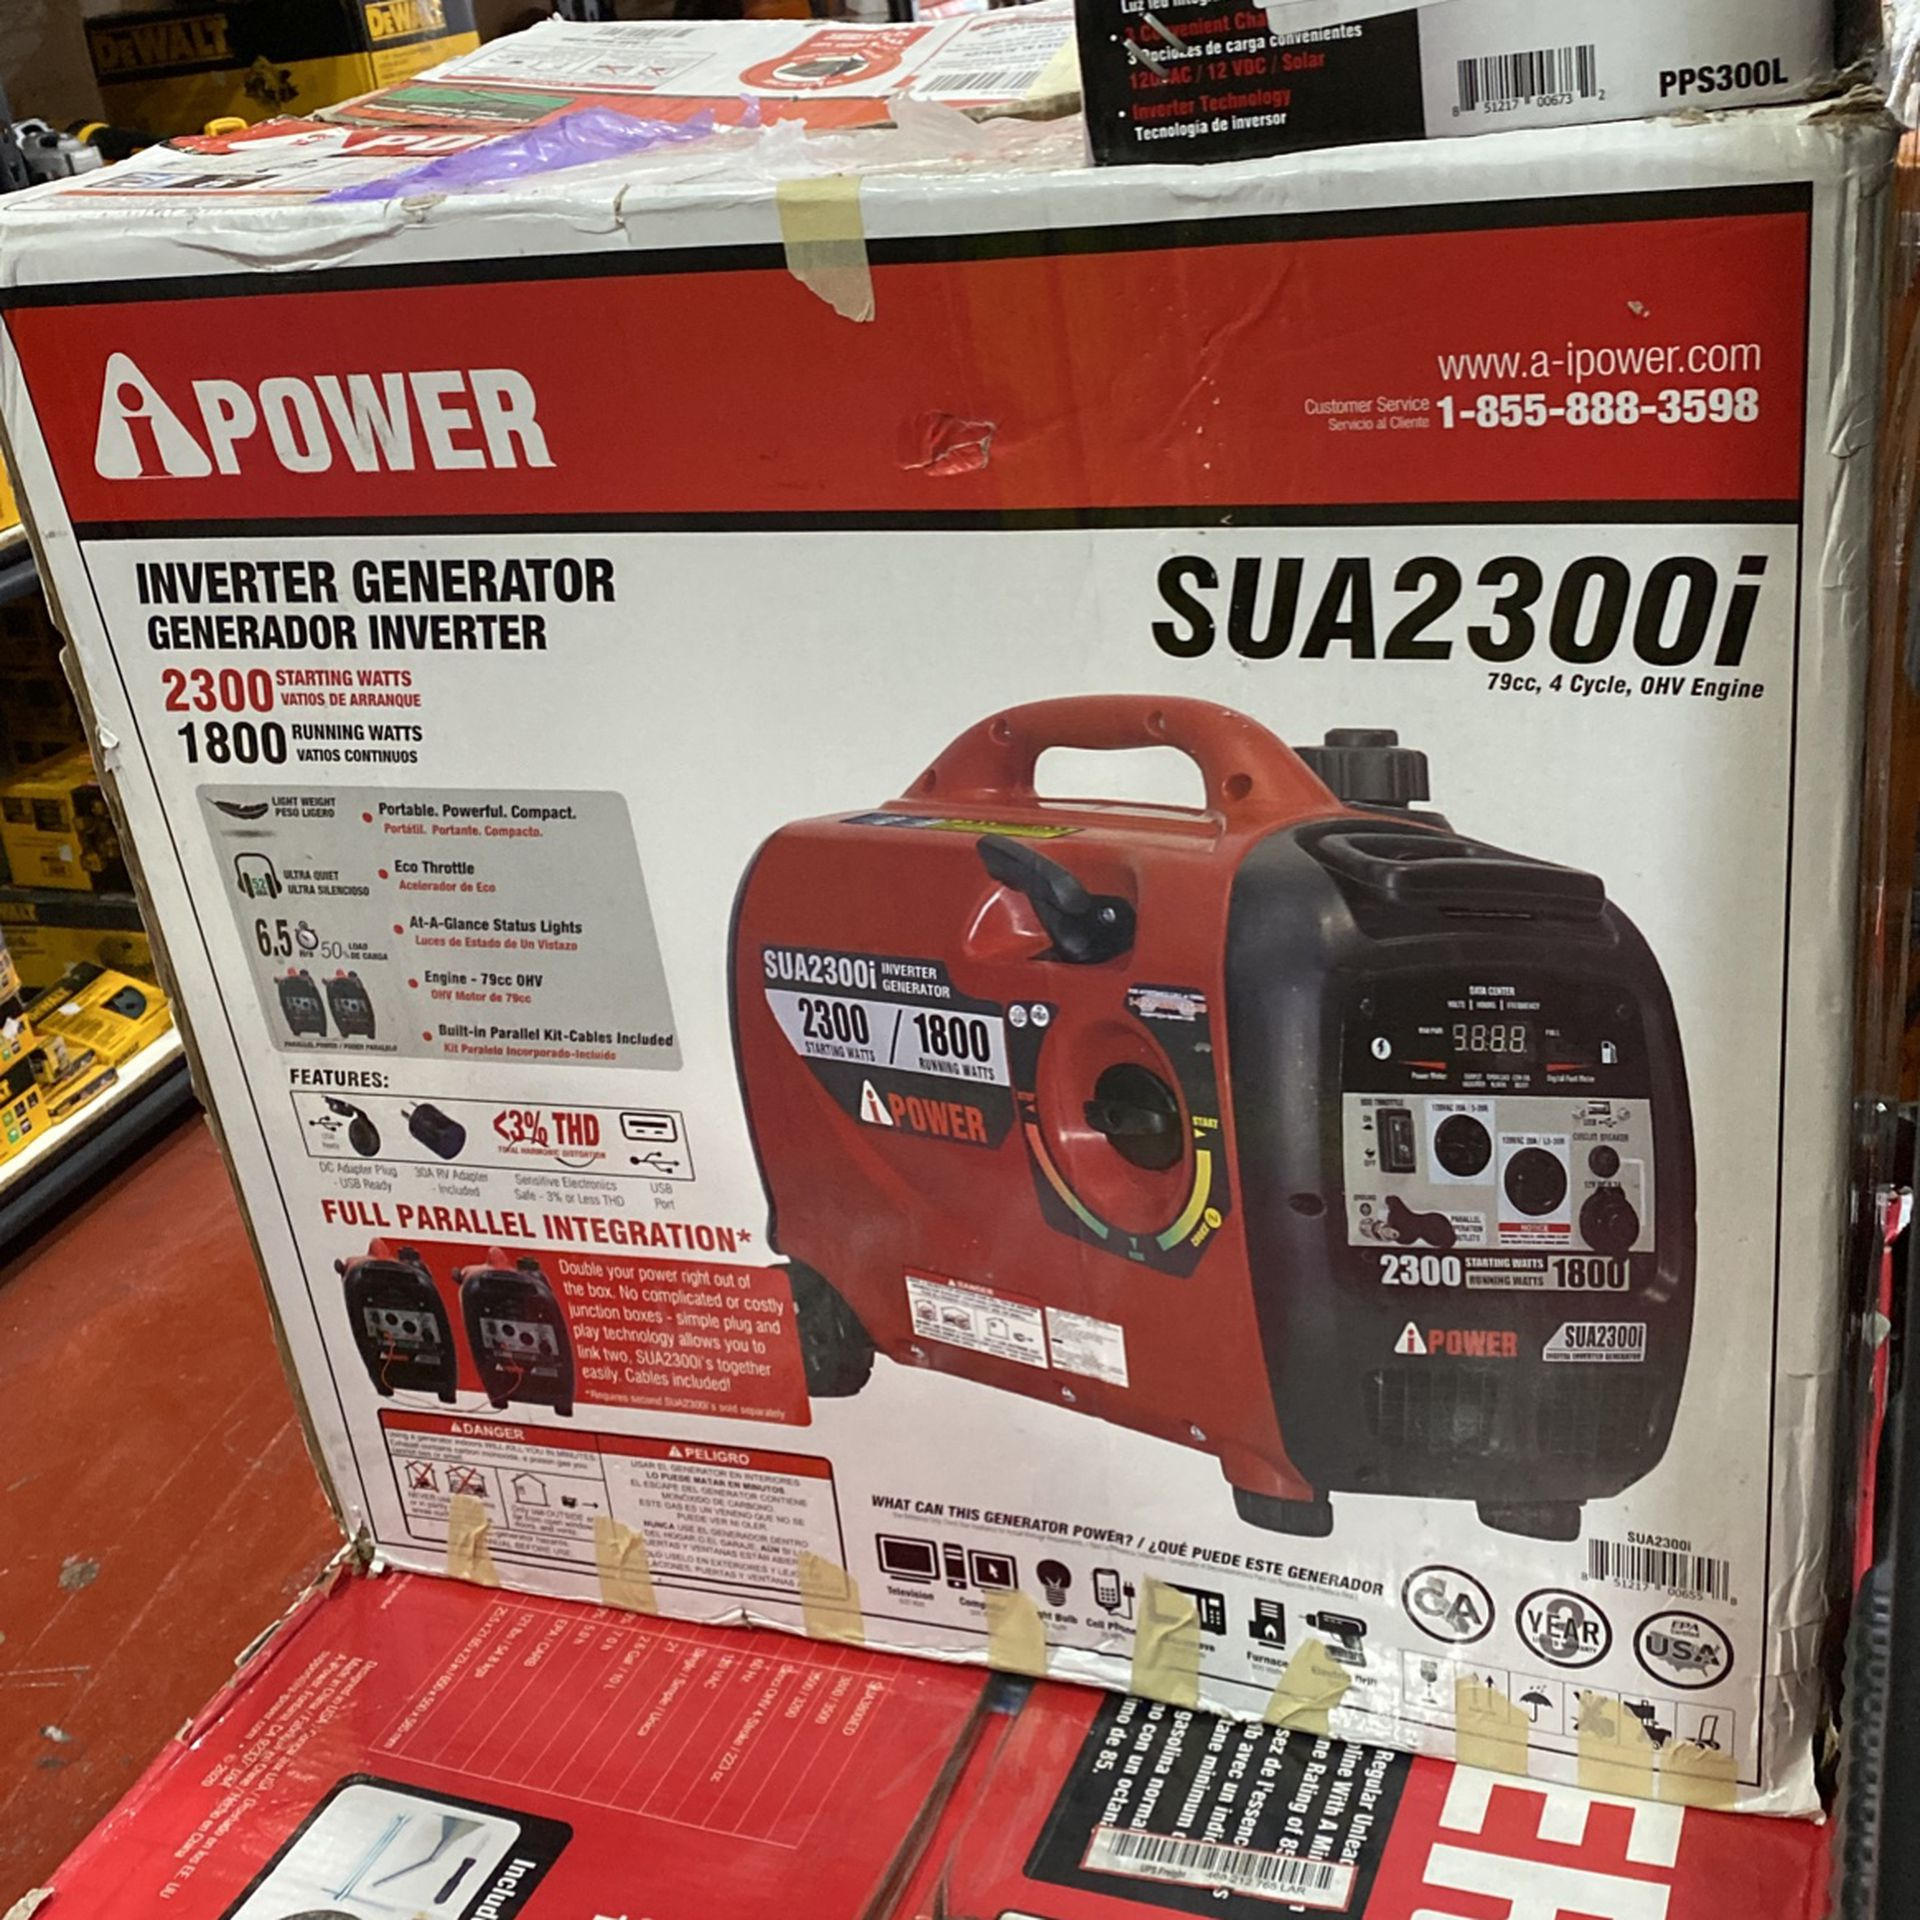 Brand New Ipower 2300 watts Inverter Generator Ultra Quite Only Asking $430